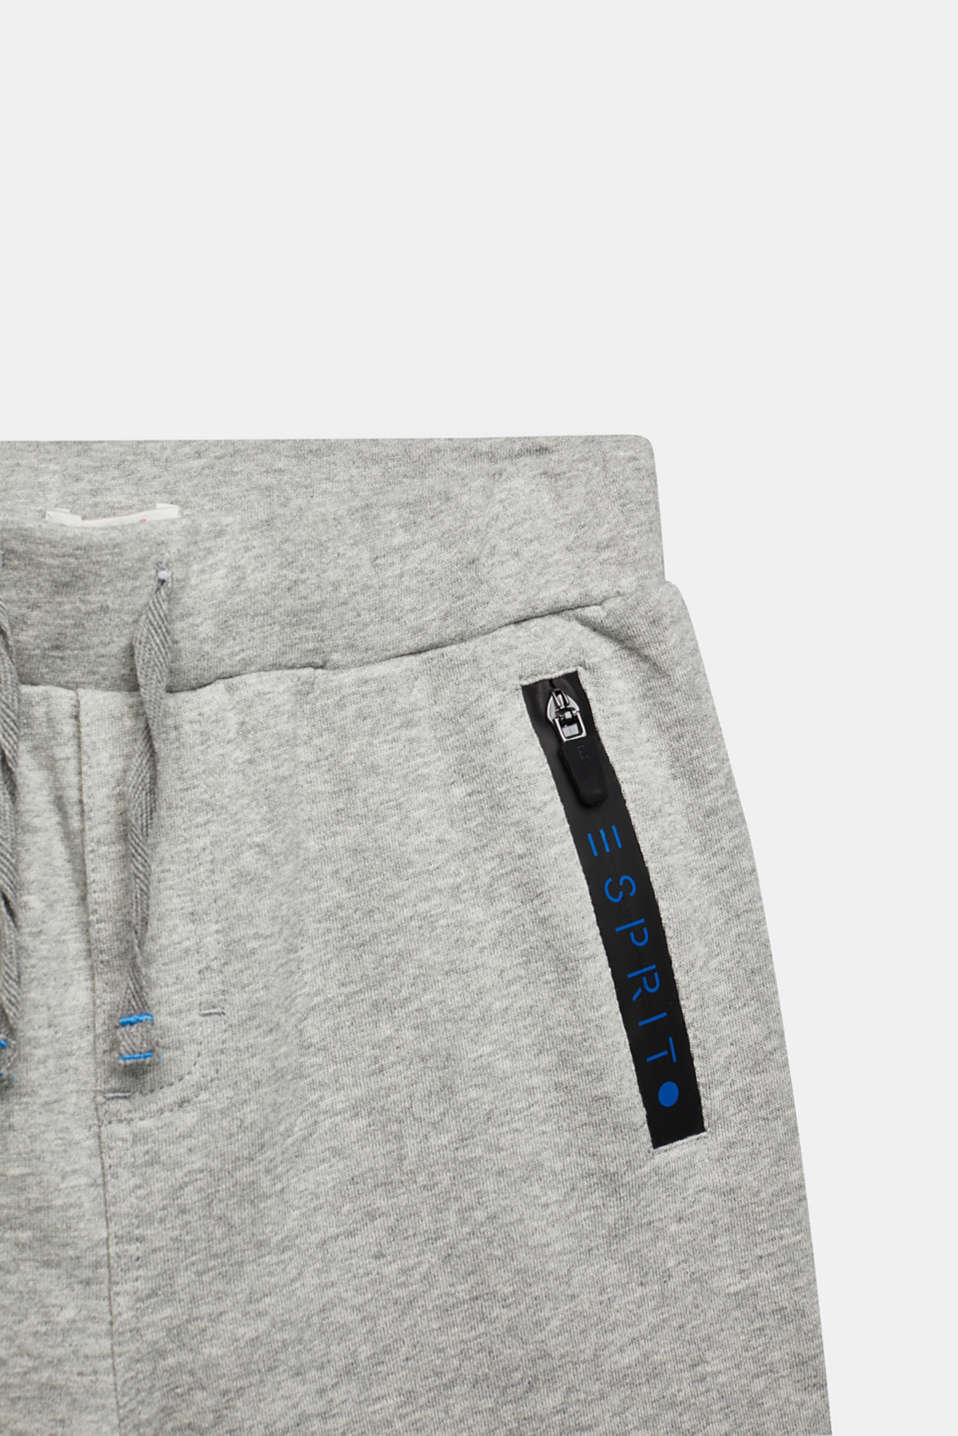 Sweat shorts, 100% cotton, LCMID HEATHER GR, detail image number 2